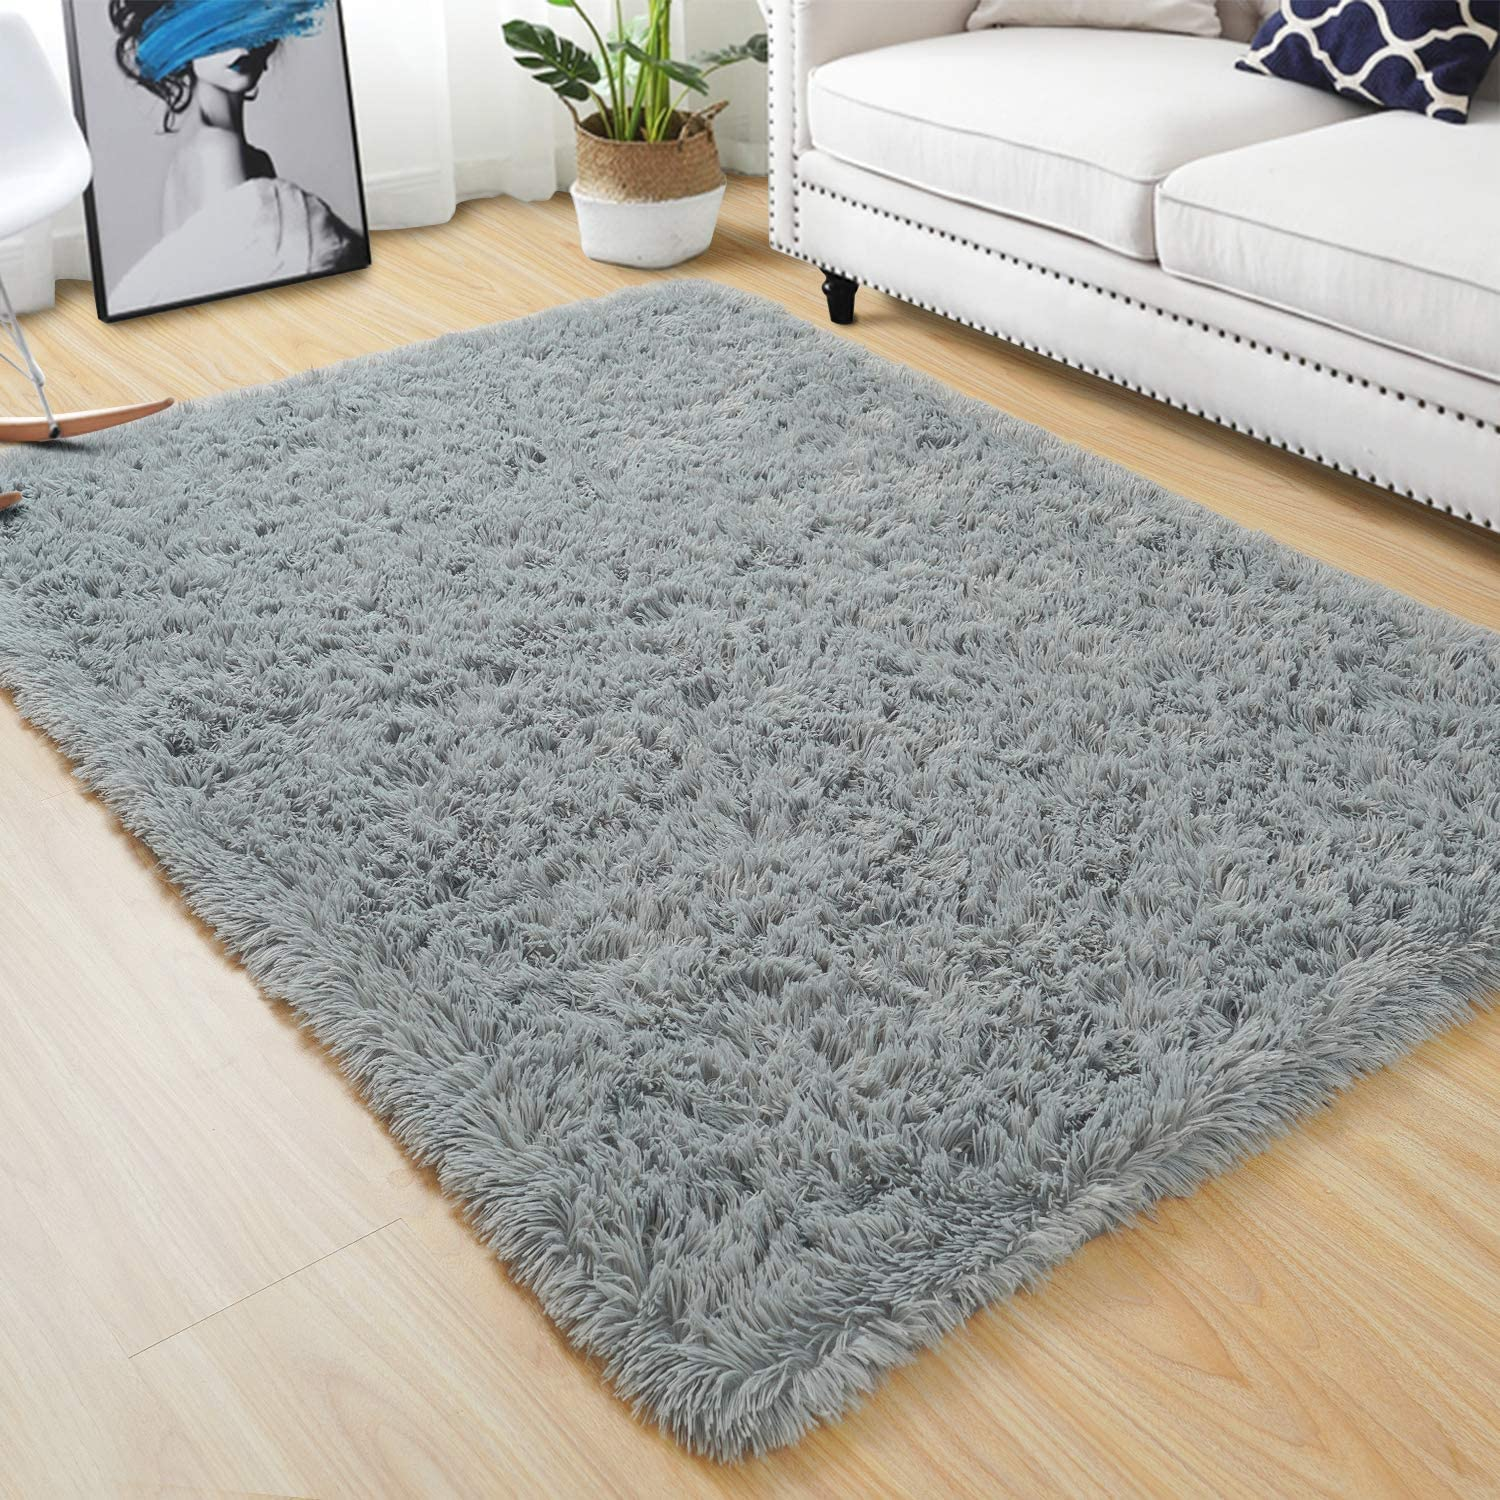 Quenlife Fluffy Bedroom Rug Plush and Soft Nursery Rugs Shaggy Carpet for Kids Grils Room Furry Children Home Decoration Shag Floor Rugs with Anti-Slip Bottom, 3 x 5ft, Grey